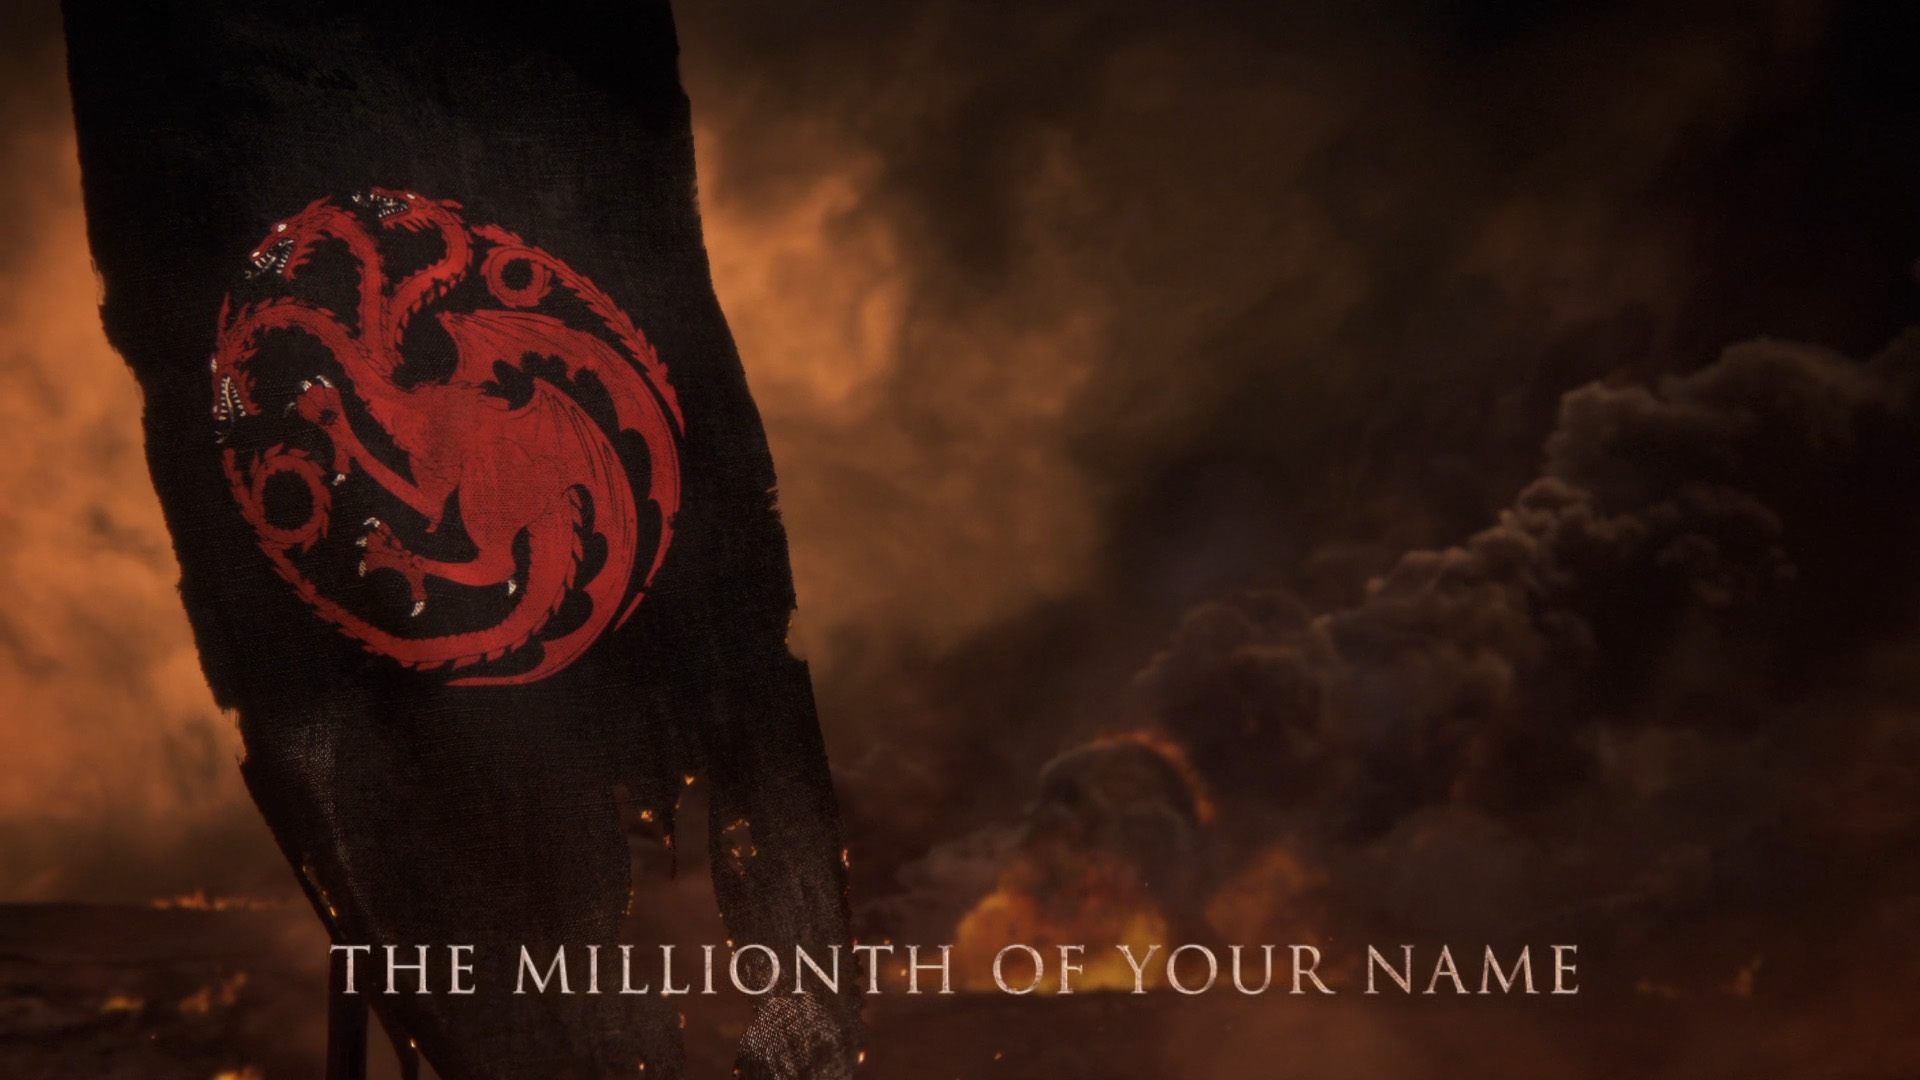 HBO_GOT_s6_Targaryen_1920_1080-0-00-09-11